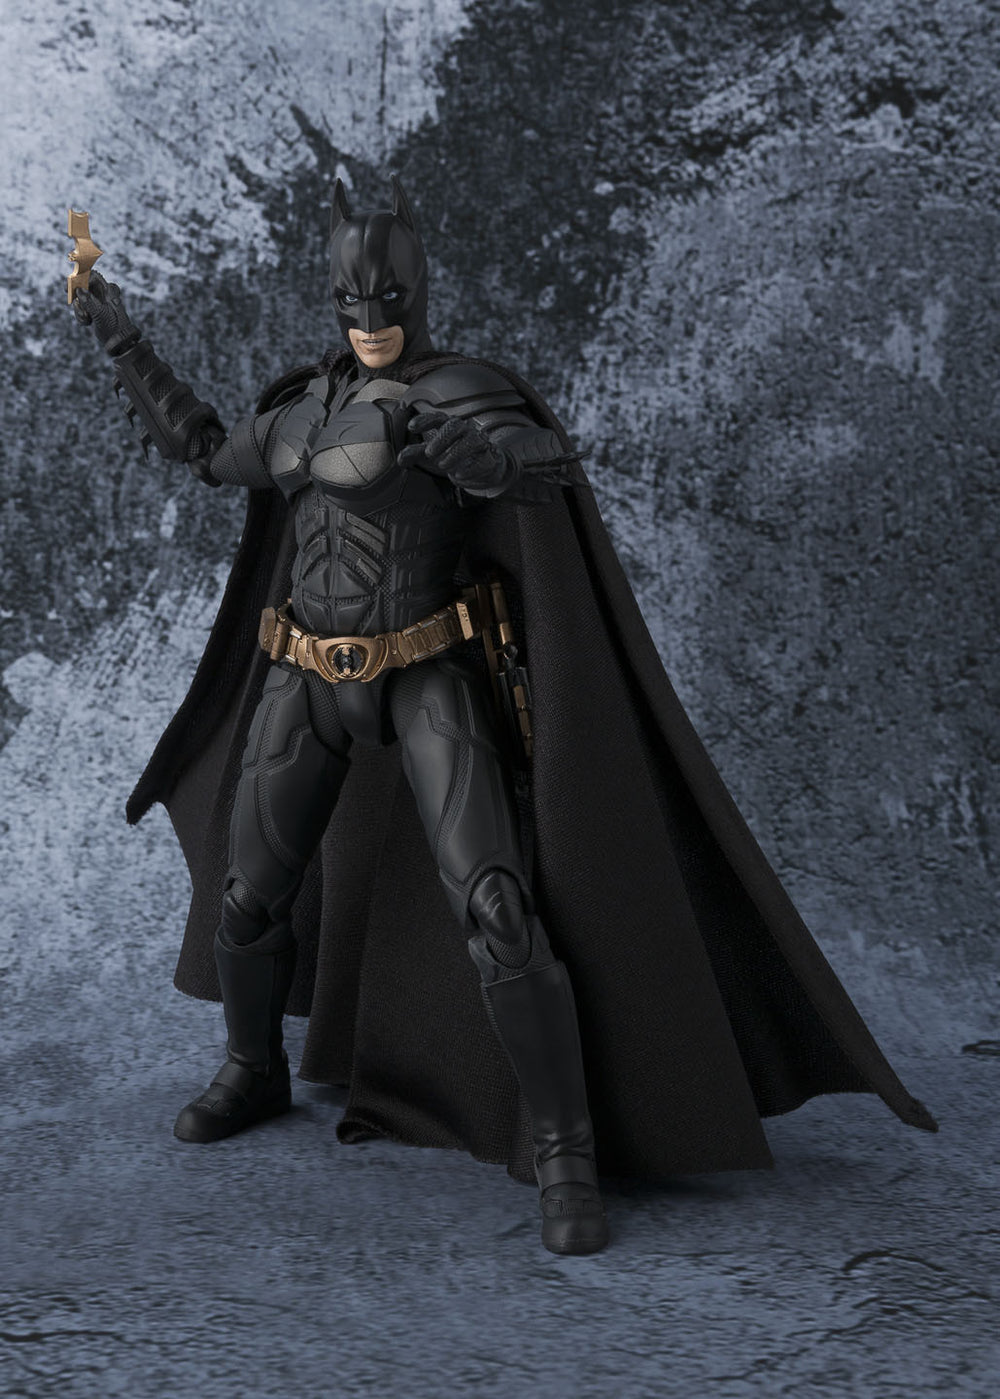 S.H. Figuarts Batman: The Dark Knight